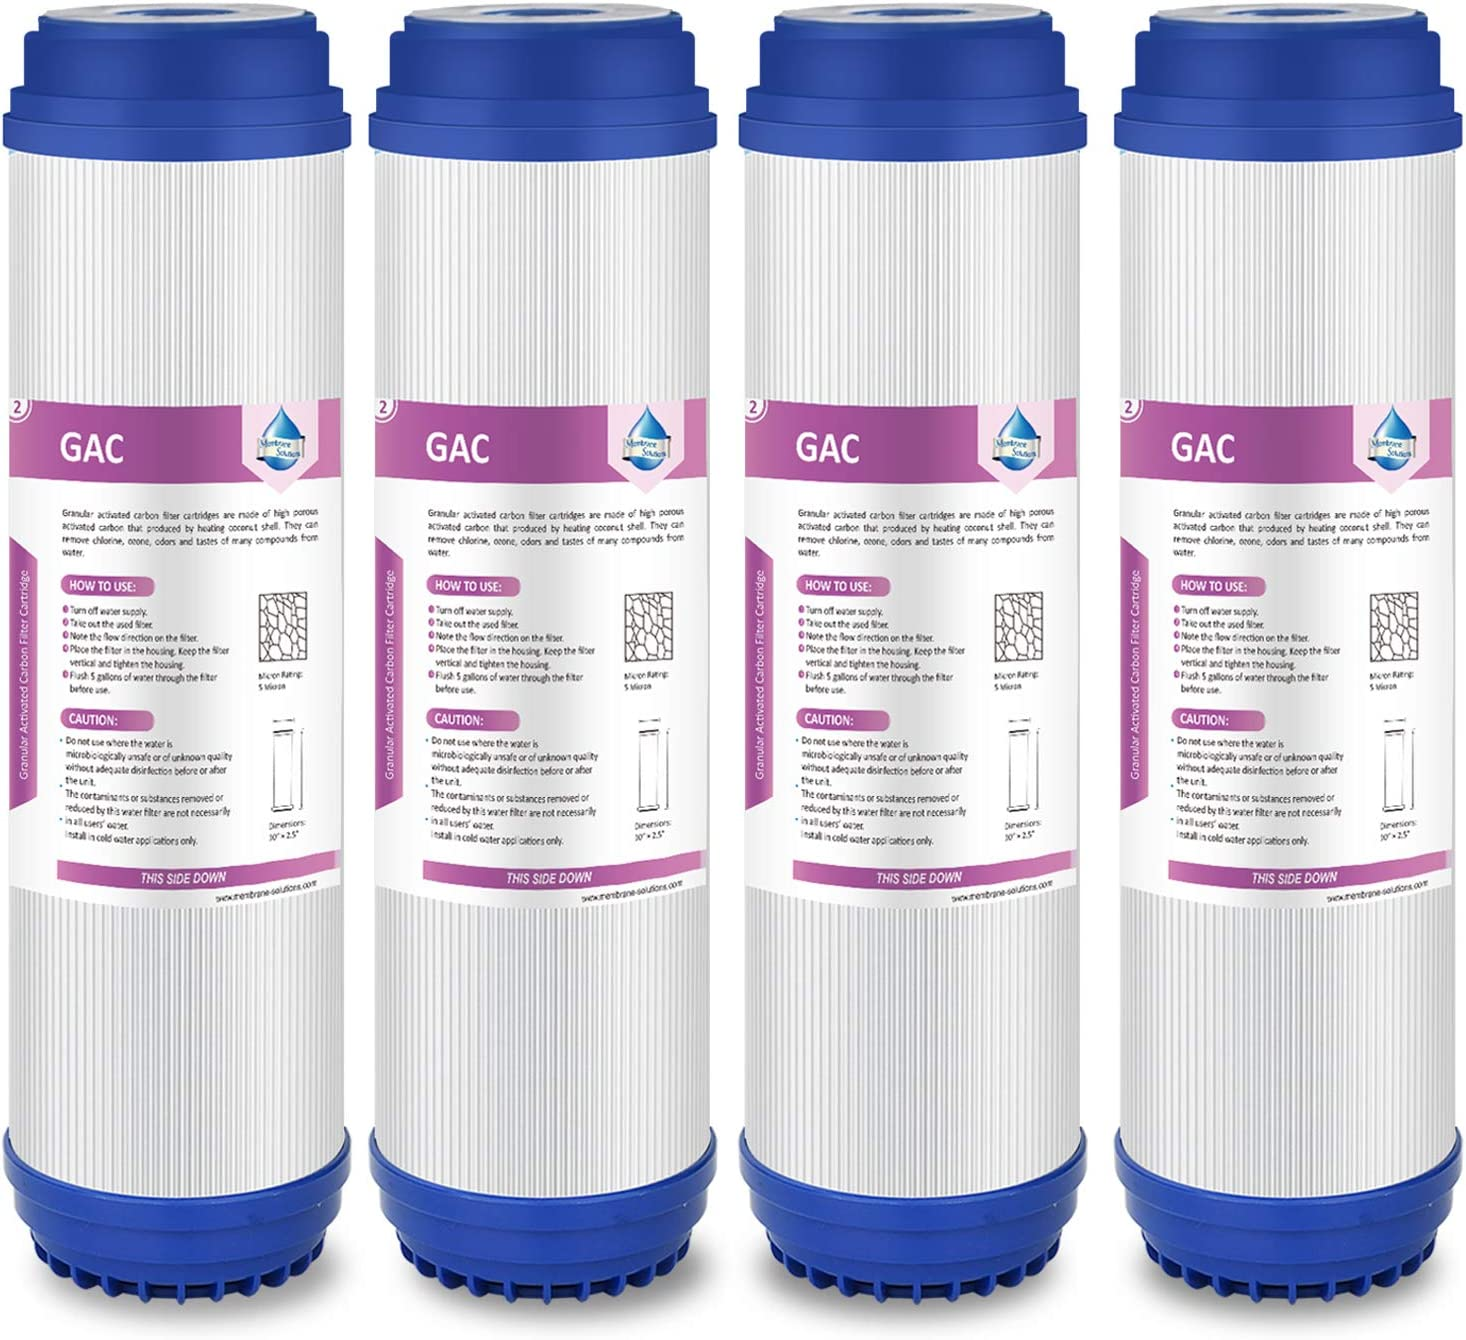 Membrane Solutions 5 Micron 4 Pack 10-Inch GAC Filter